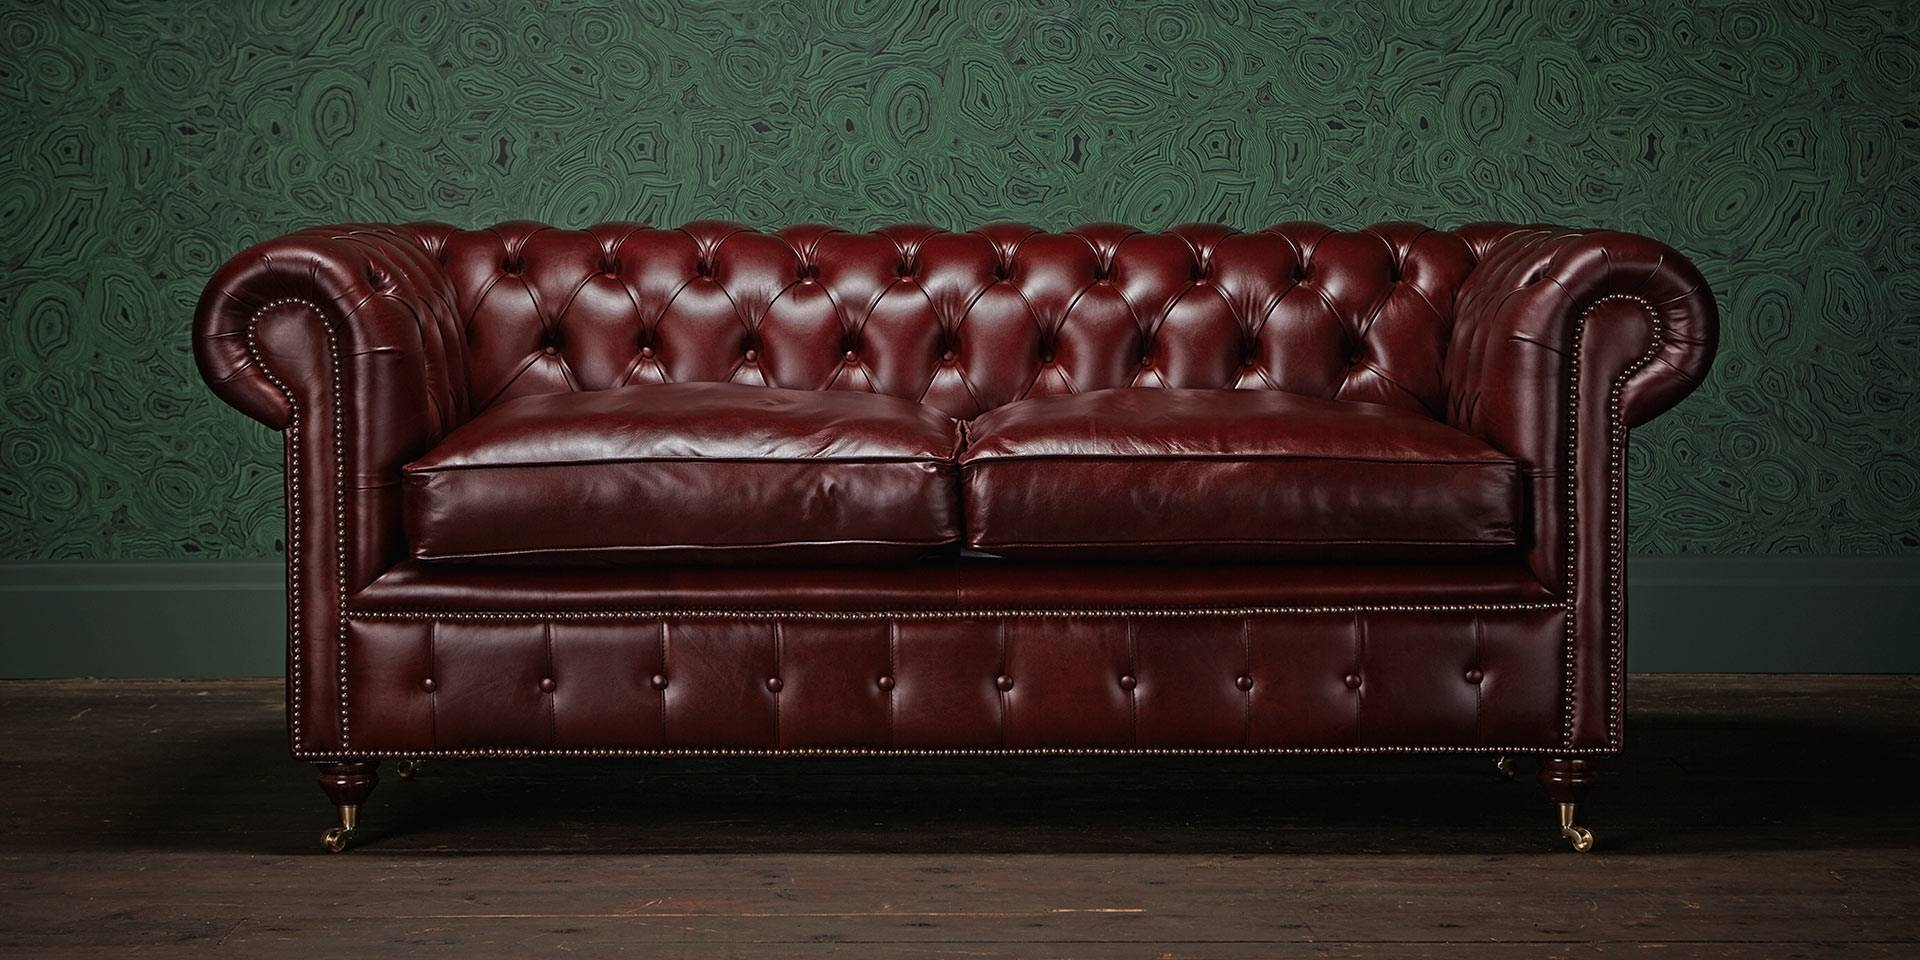 ▻ Sofa : 29 Lovely Used Chesterfield Sofa Leather Chesterfield intended for Leather Chesterfield Sofas (Image 29 of 30)